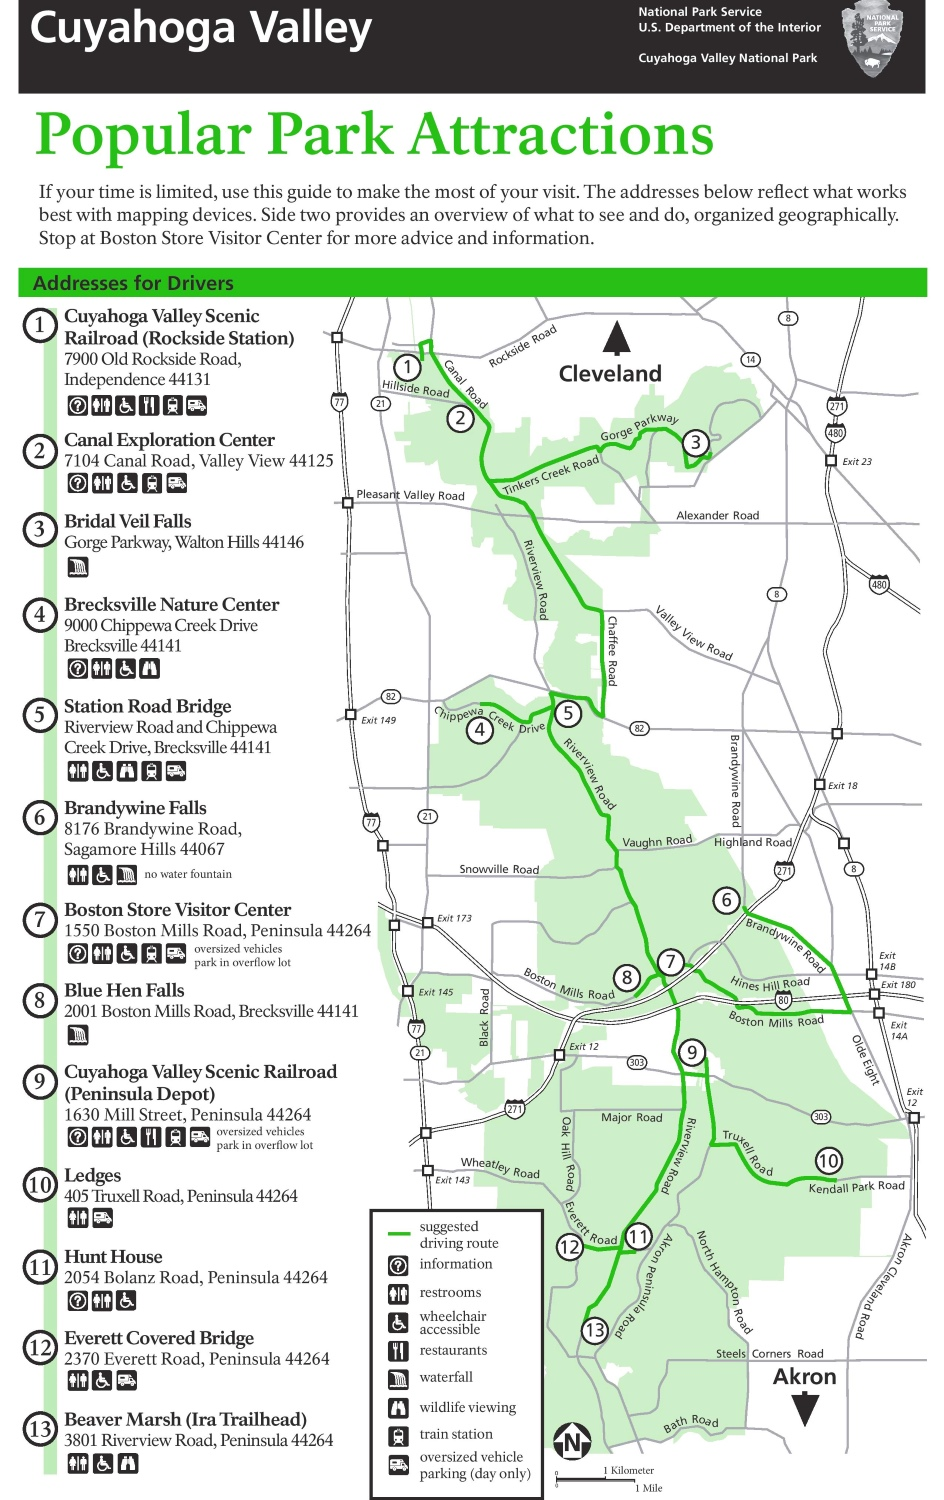 Cuyahoga Valley tourist attractions map